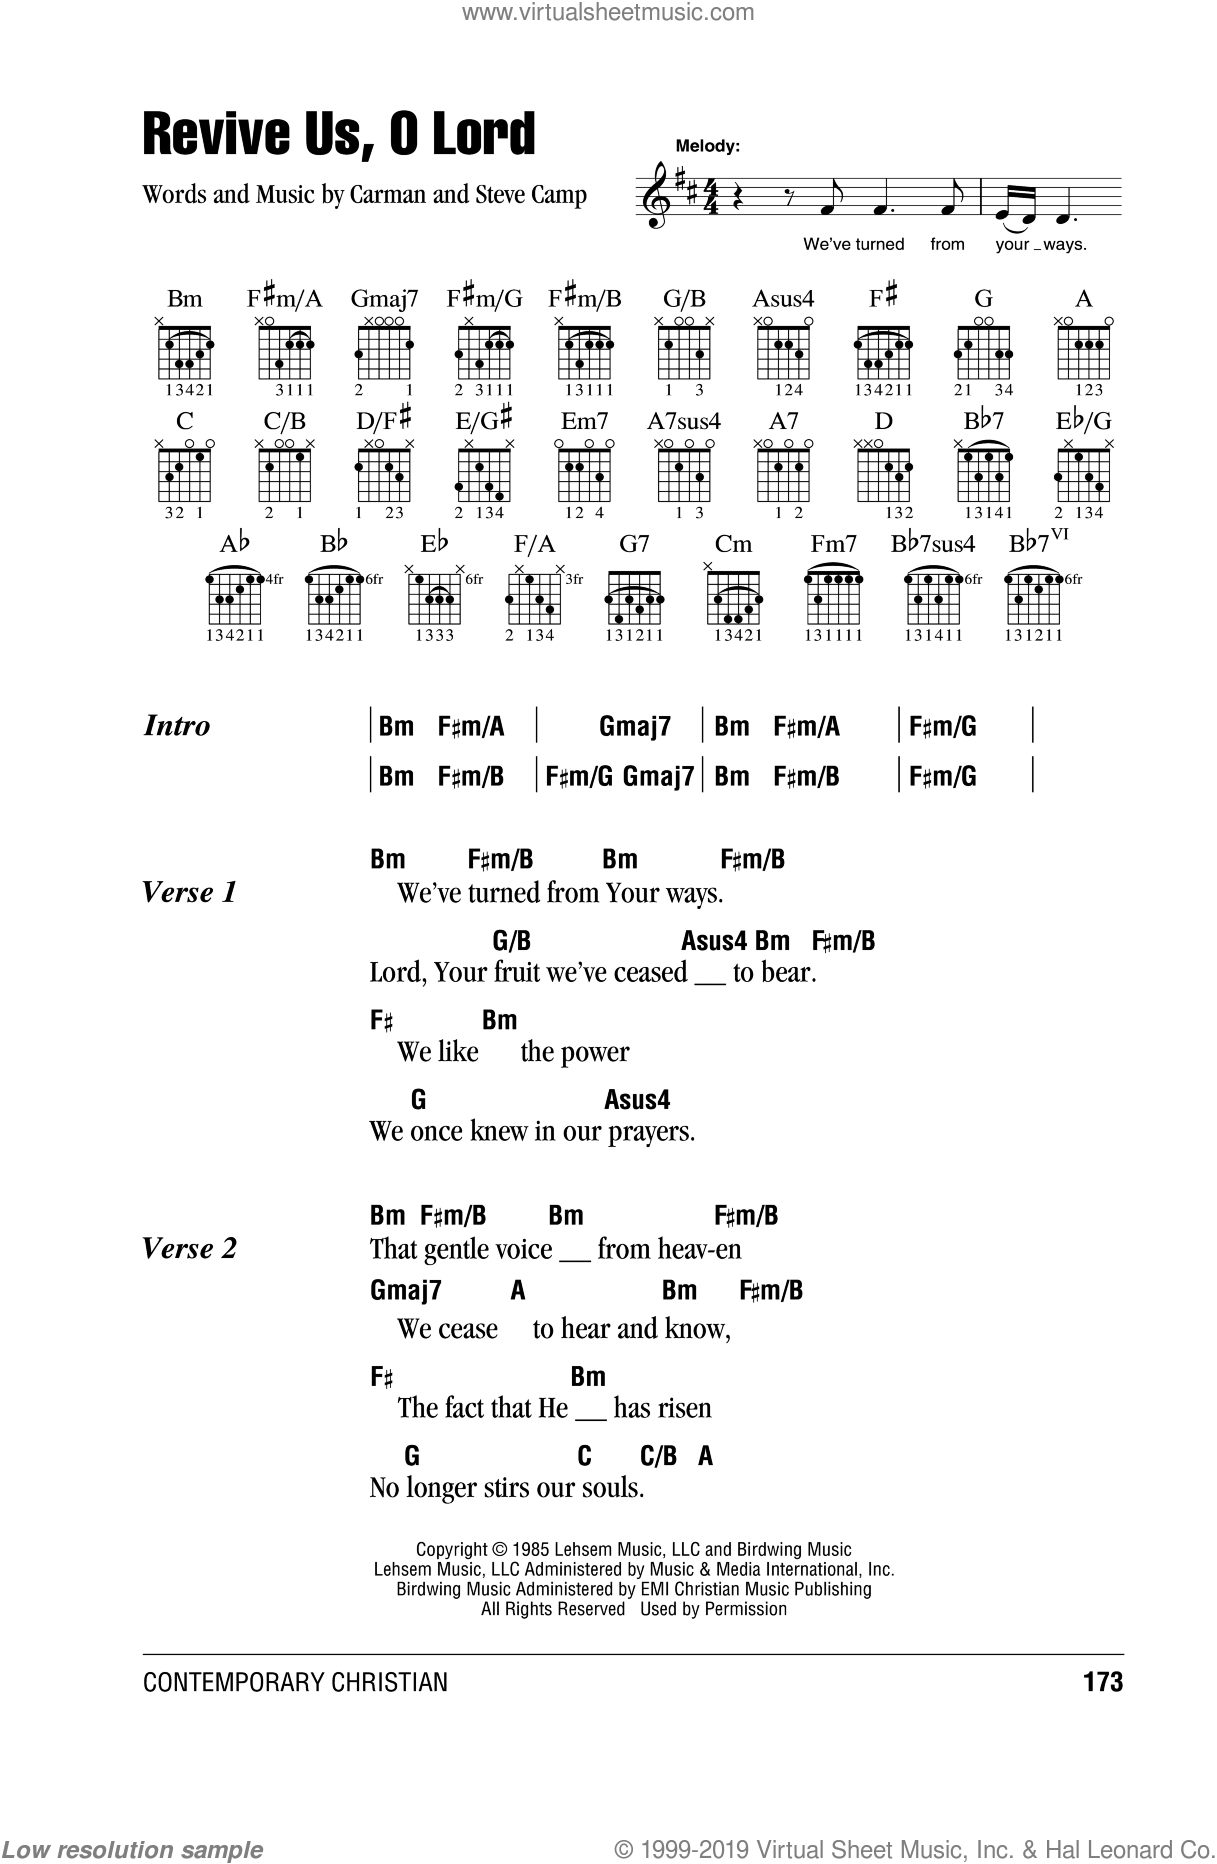 Revive Us, O Lord sheet music for guitar (chords) by Steve Camp and Carman, intermediate guitar (chords). Score Image Preview.